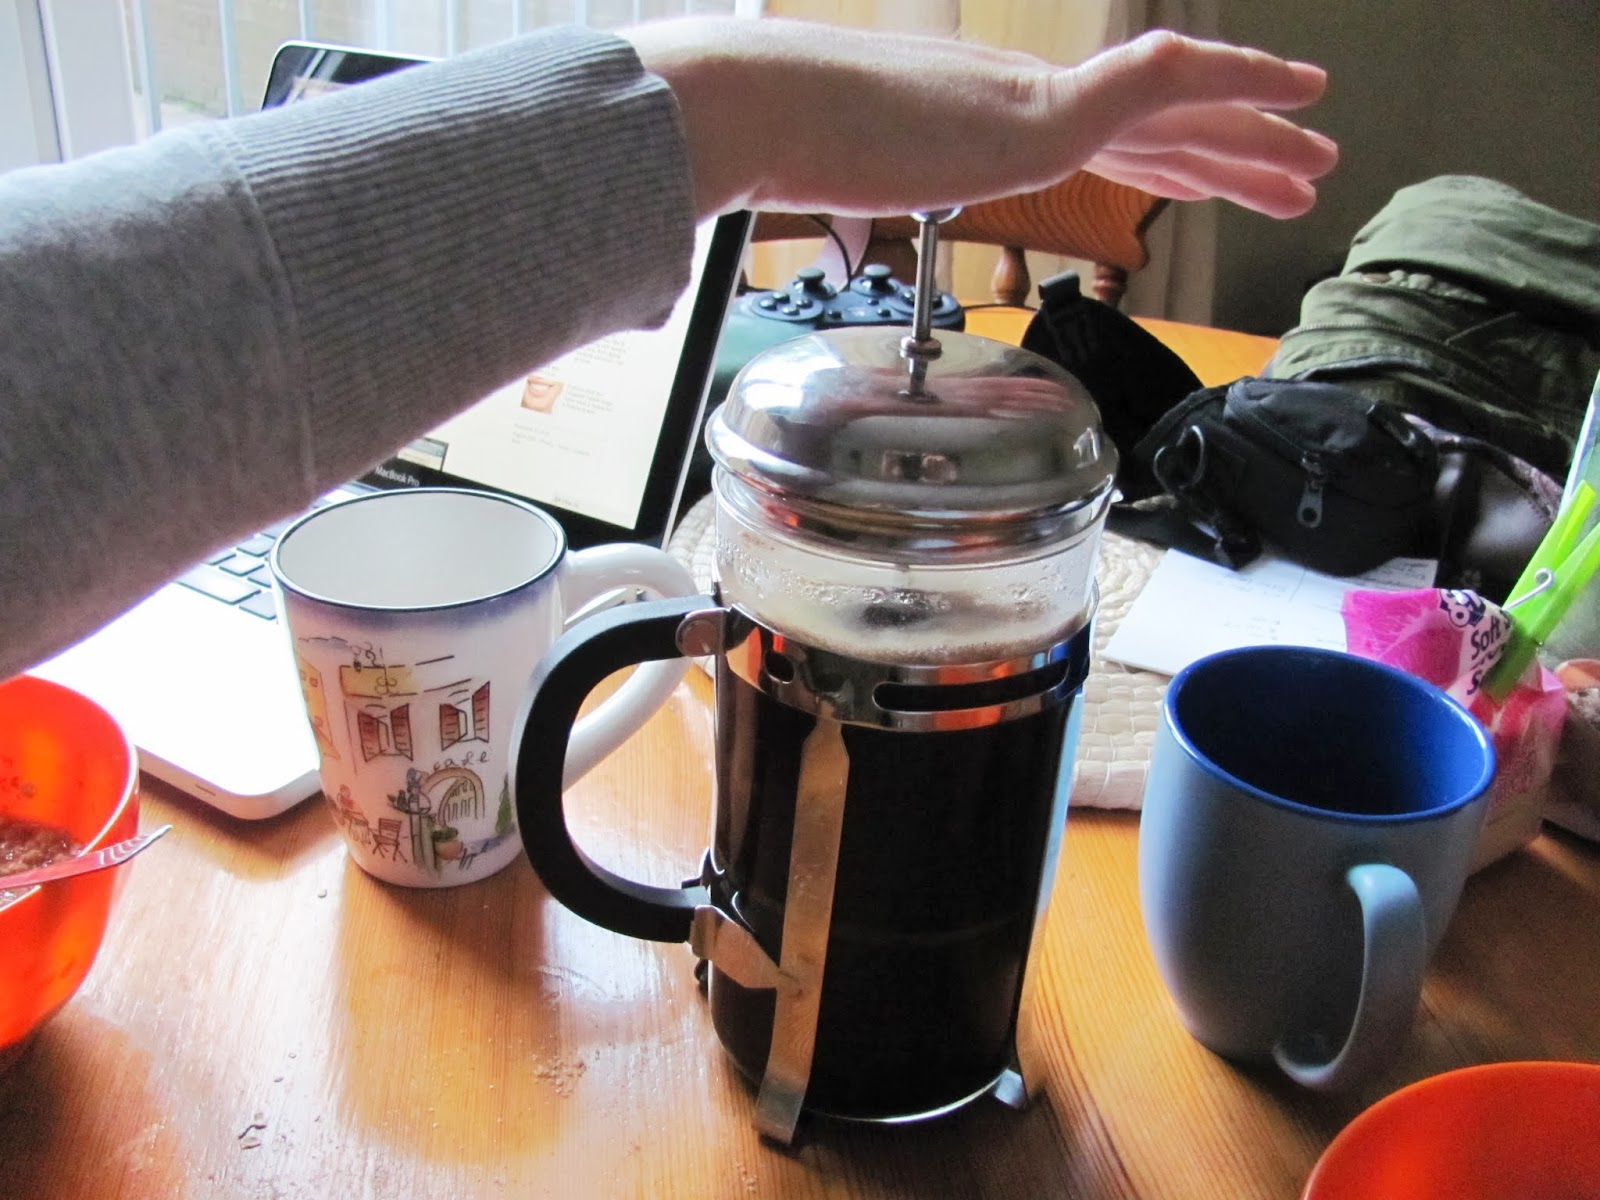 Pushing down the plunger on the cafetiere French press in Dublin, Ireland